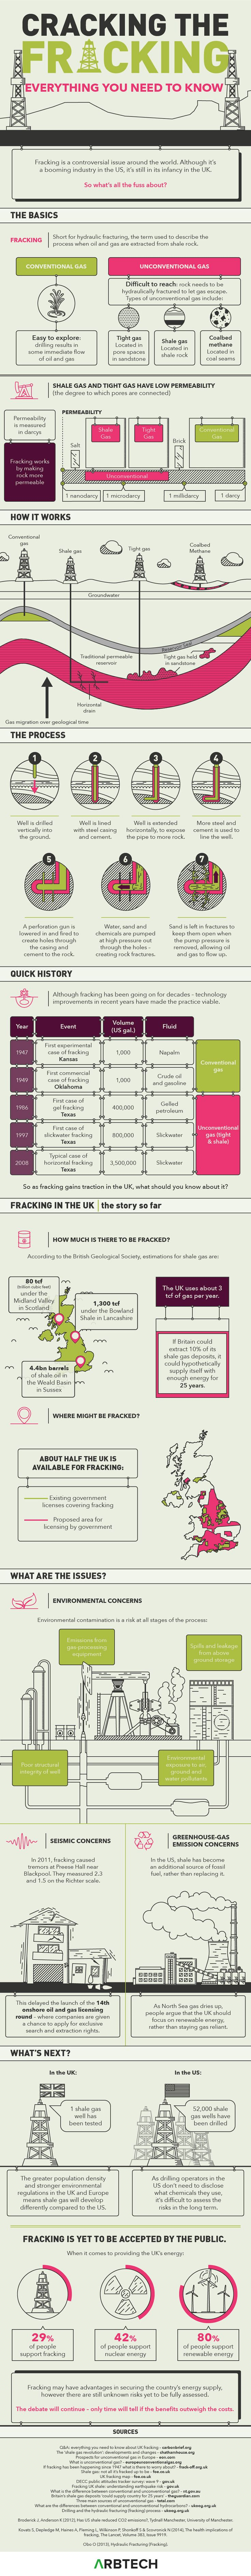 Cracking the Fracking: Everything You Need To Know #infographic #Petroleum #Gas #Mining #Energy